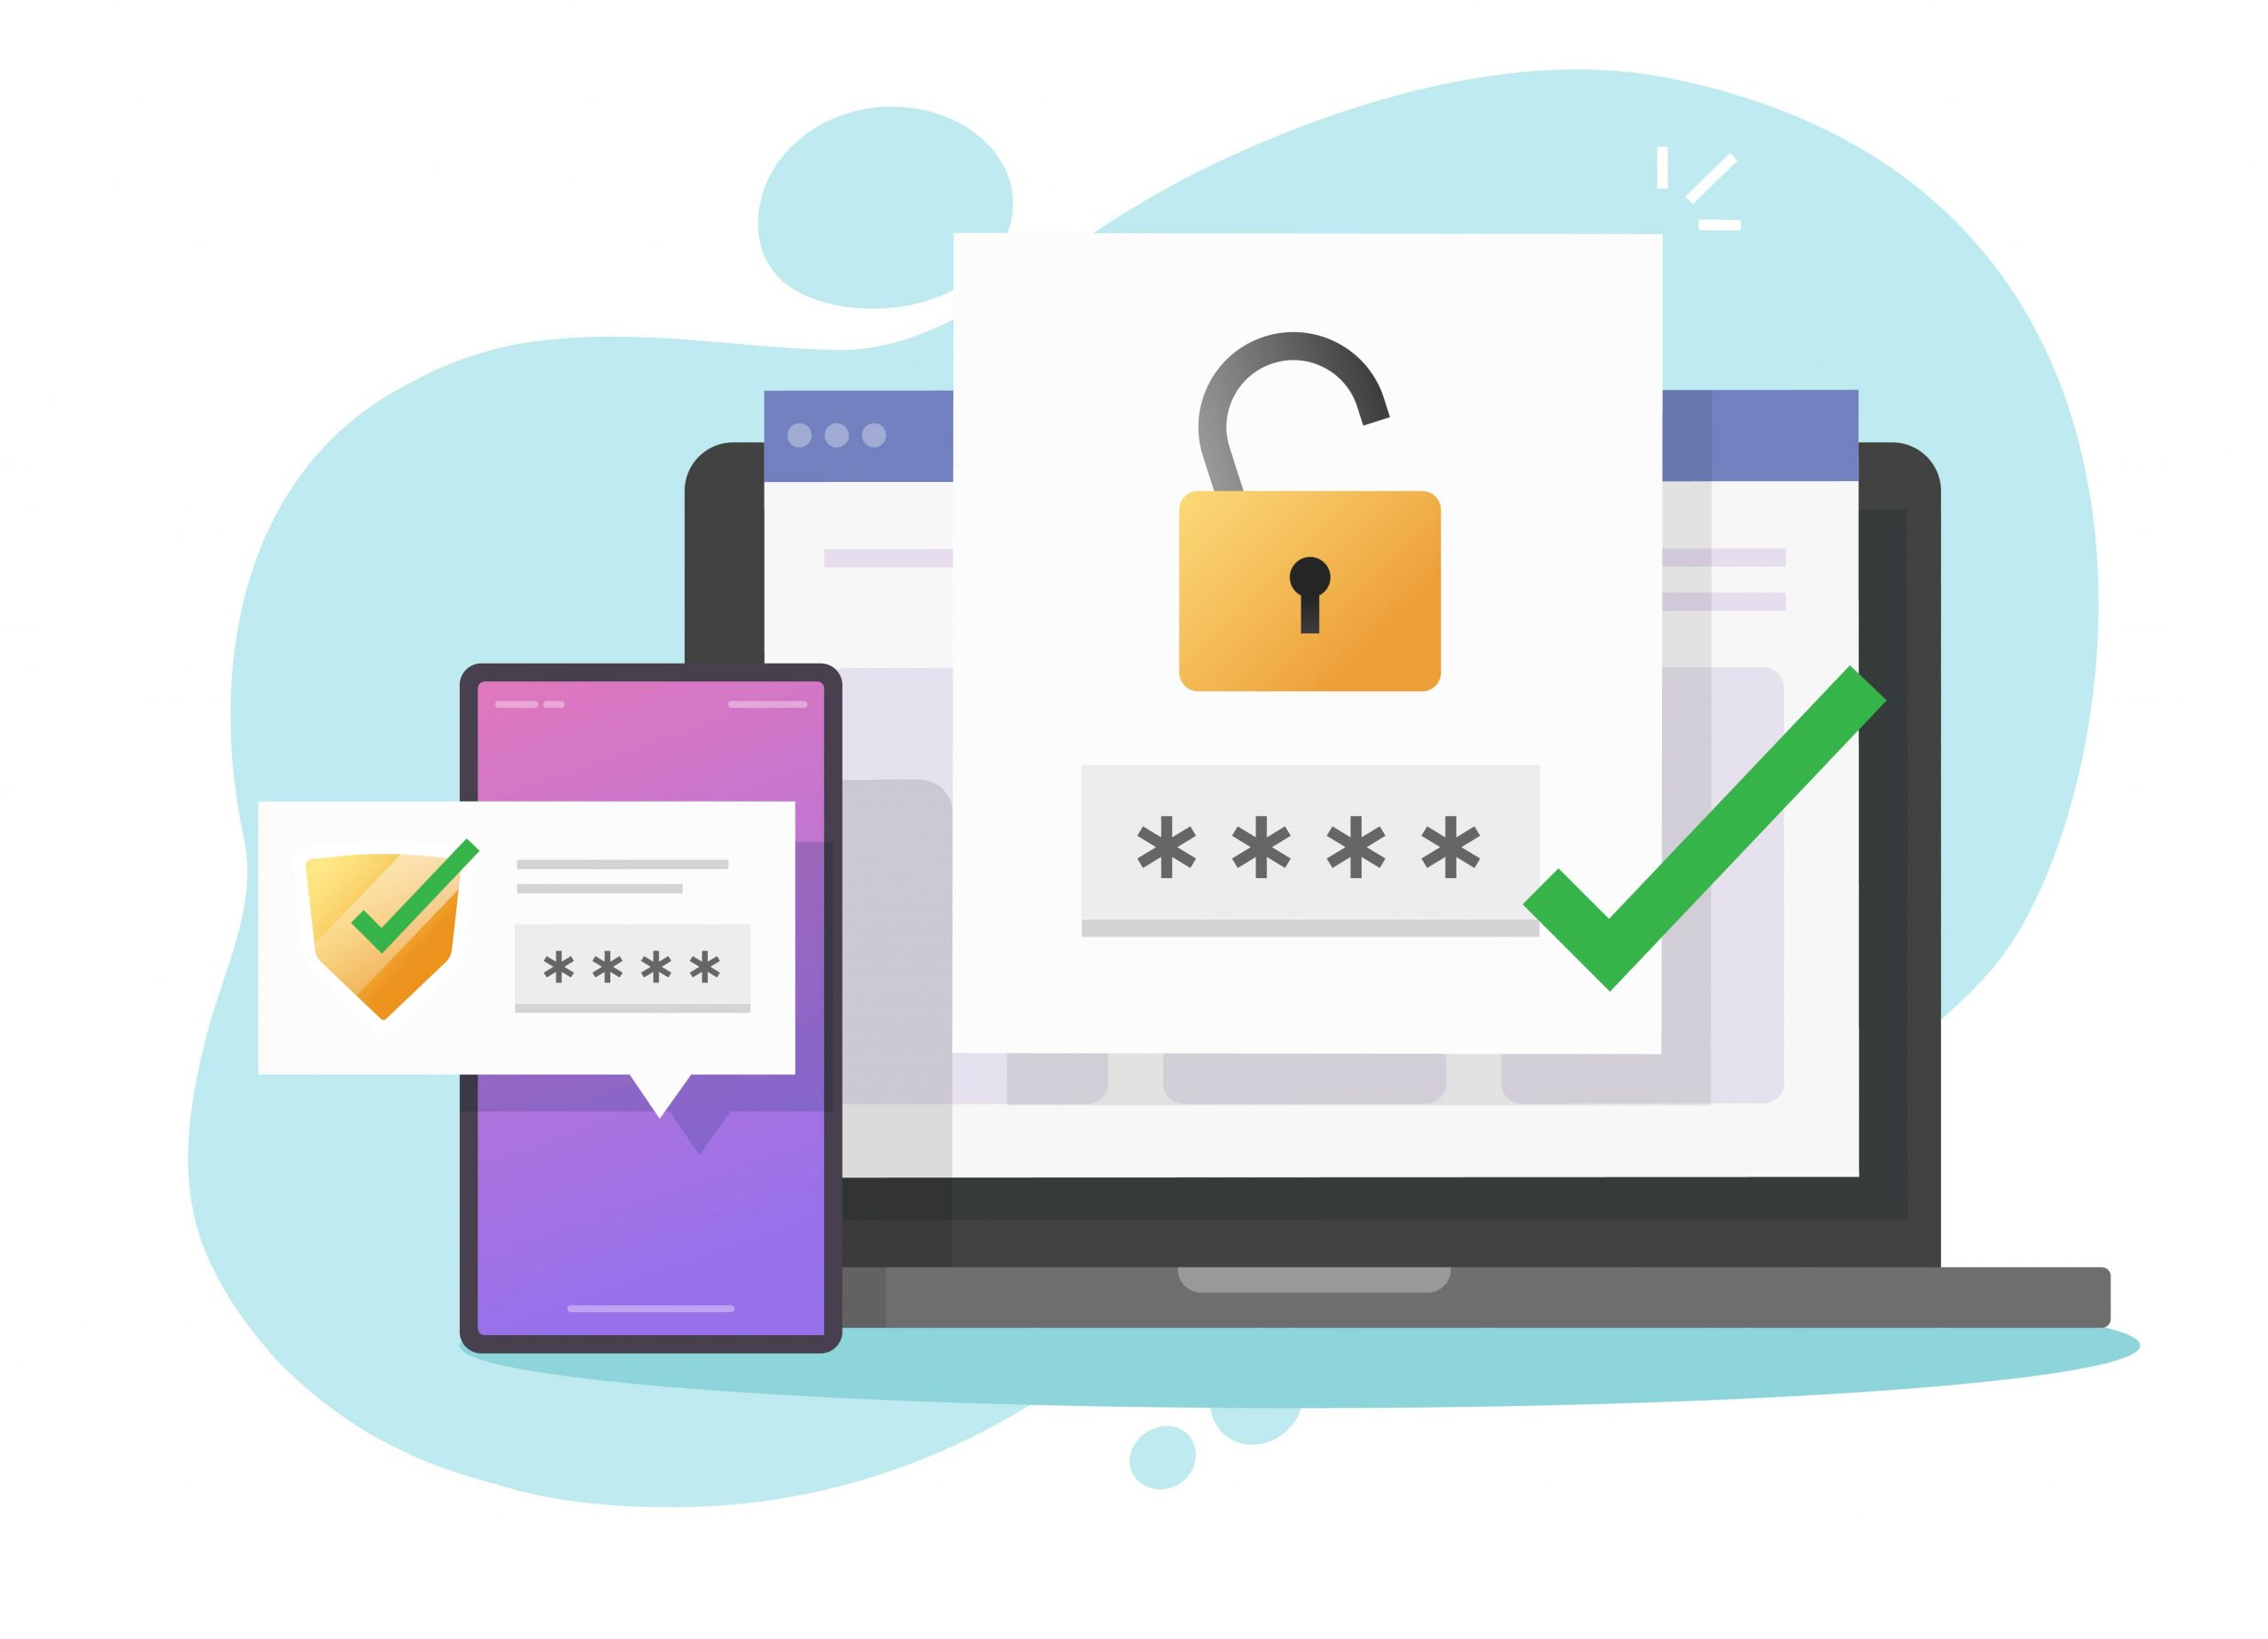 Most employees reusing personal passwords to protect corporate data